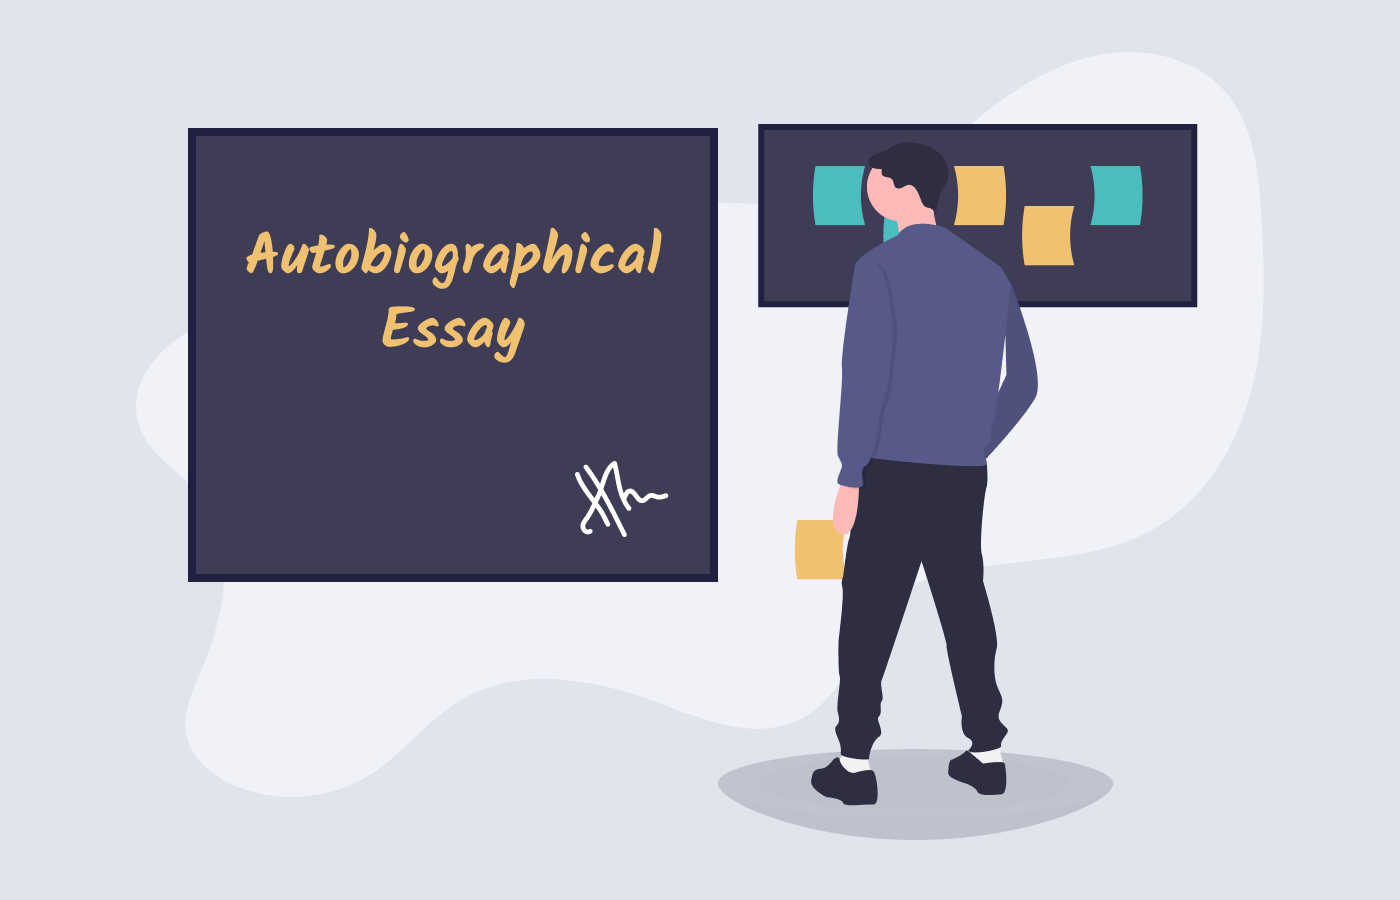 How To Write An Autobiography The Ultimate Guide With Pro Tips Essay Autobiography Writing Services